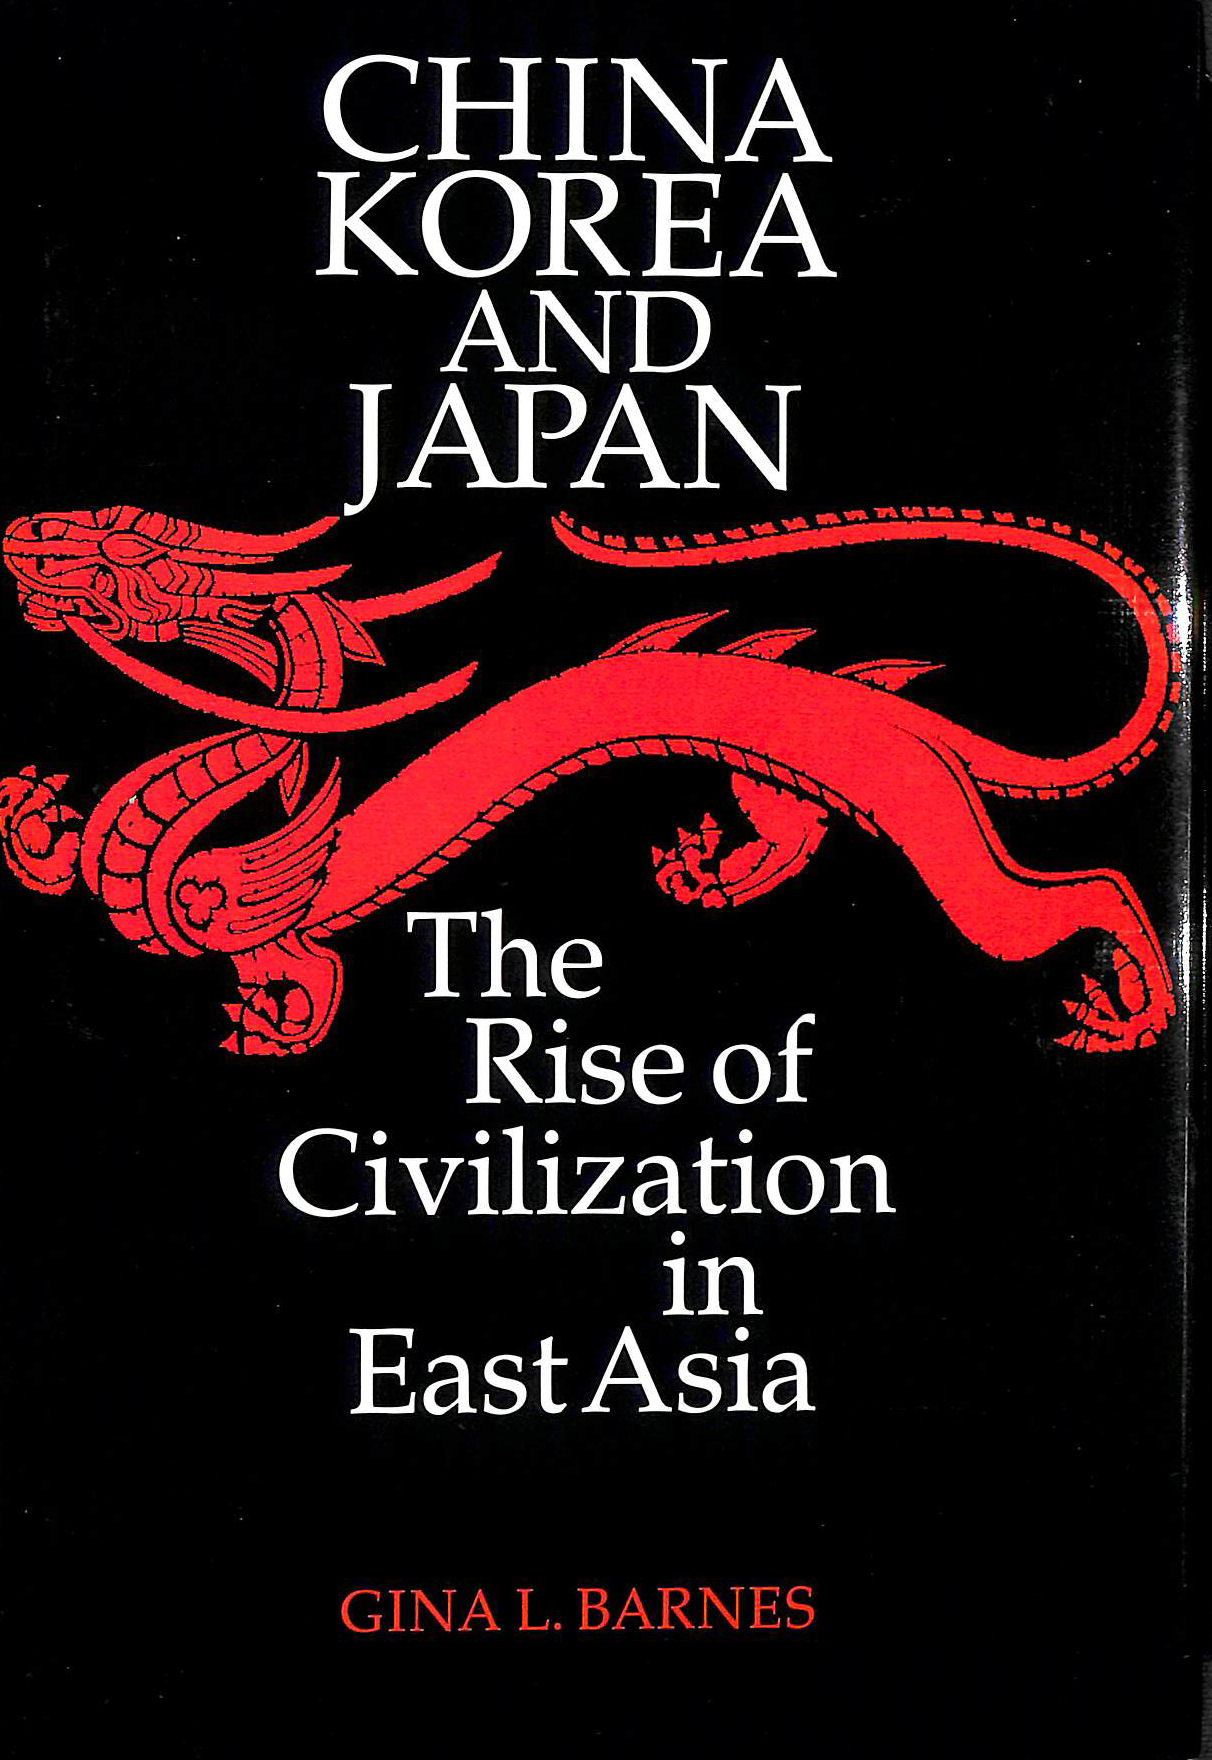 Image for China, Korea and Japan: Rise of Civilization in East Asia